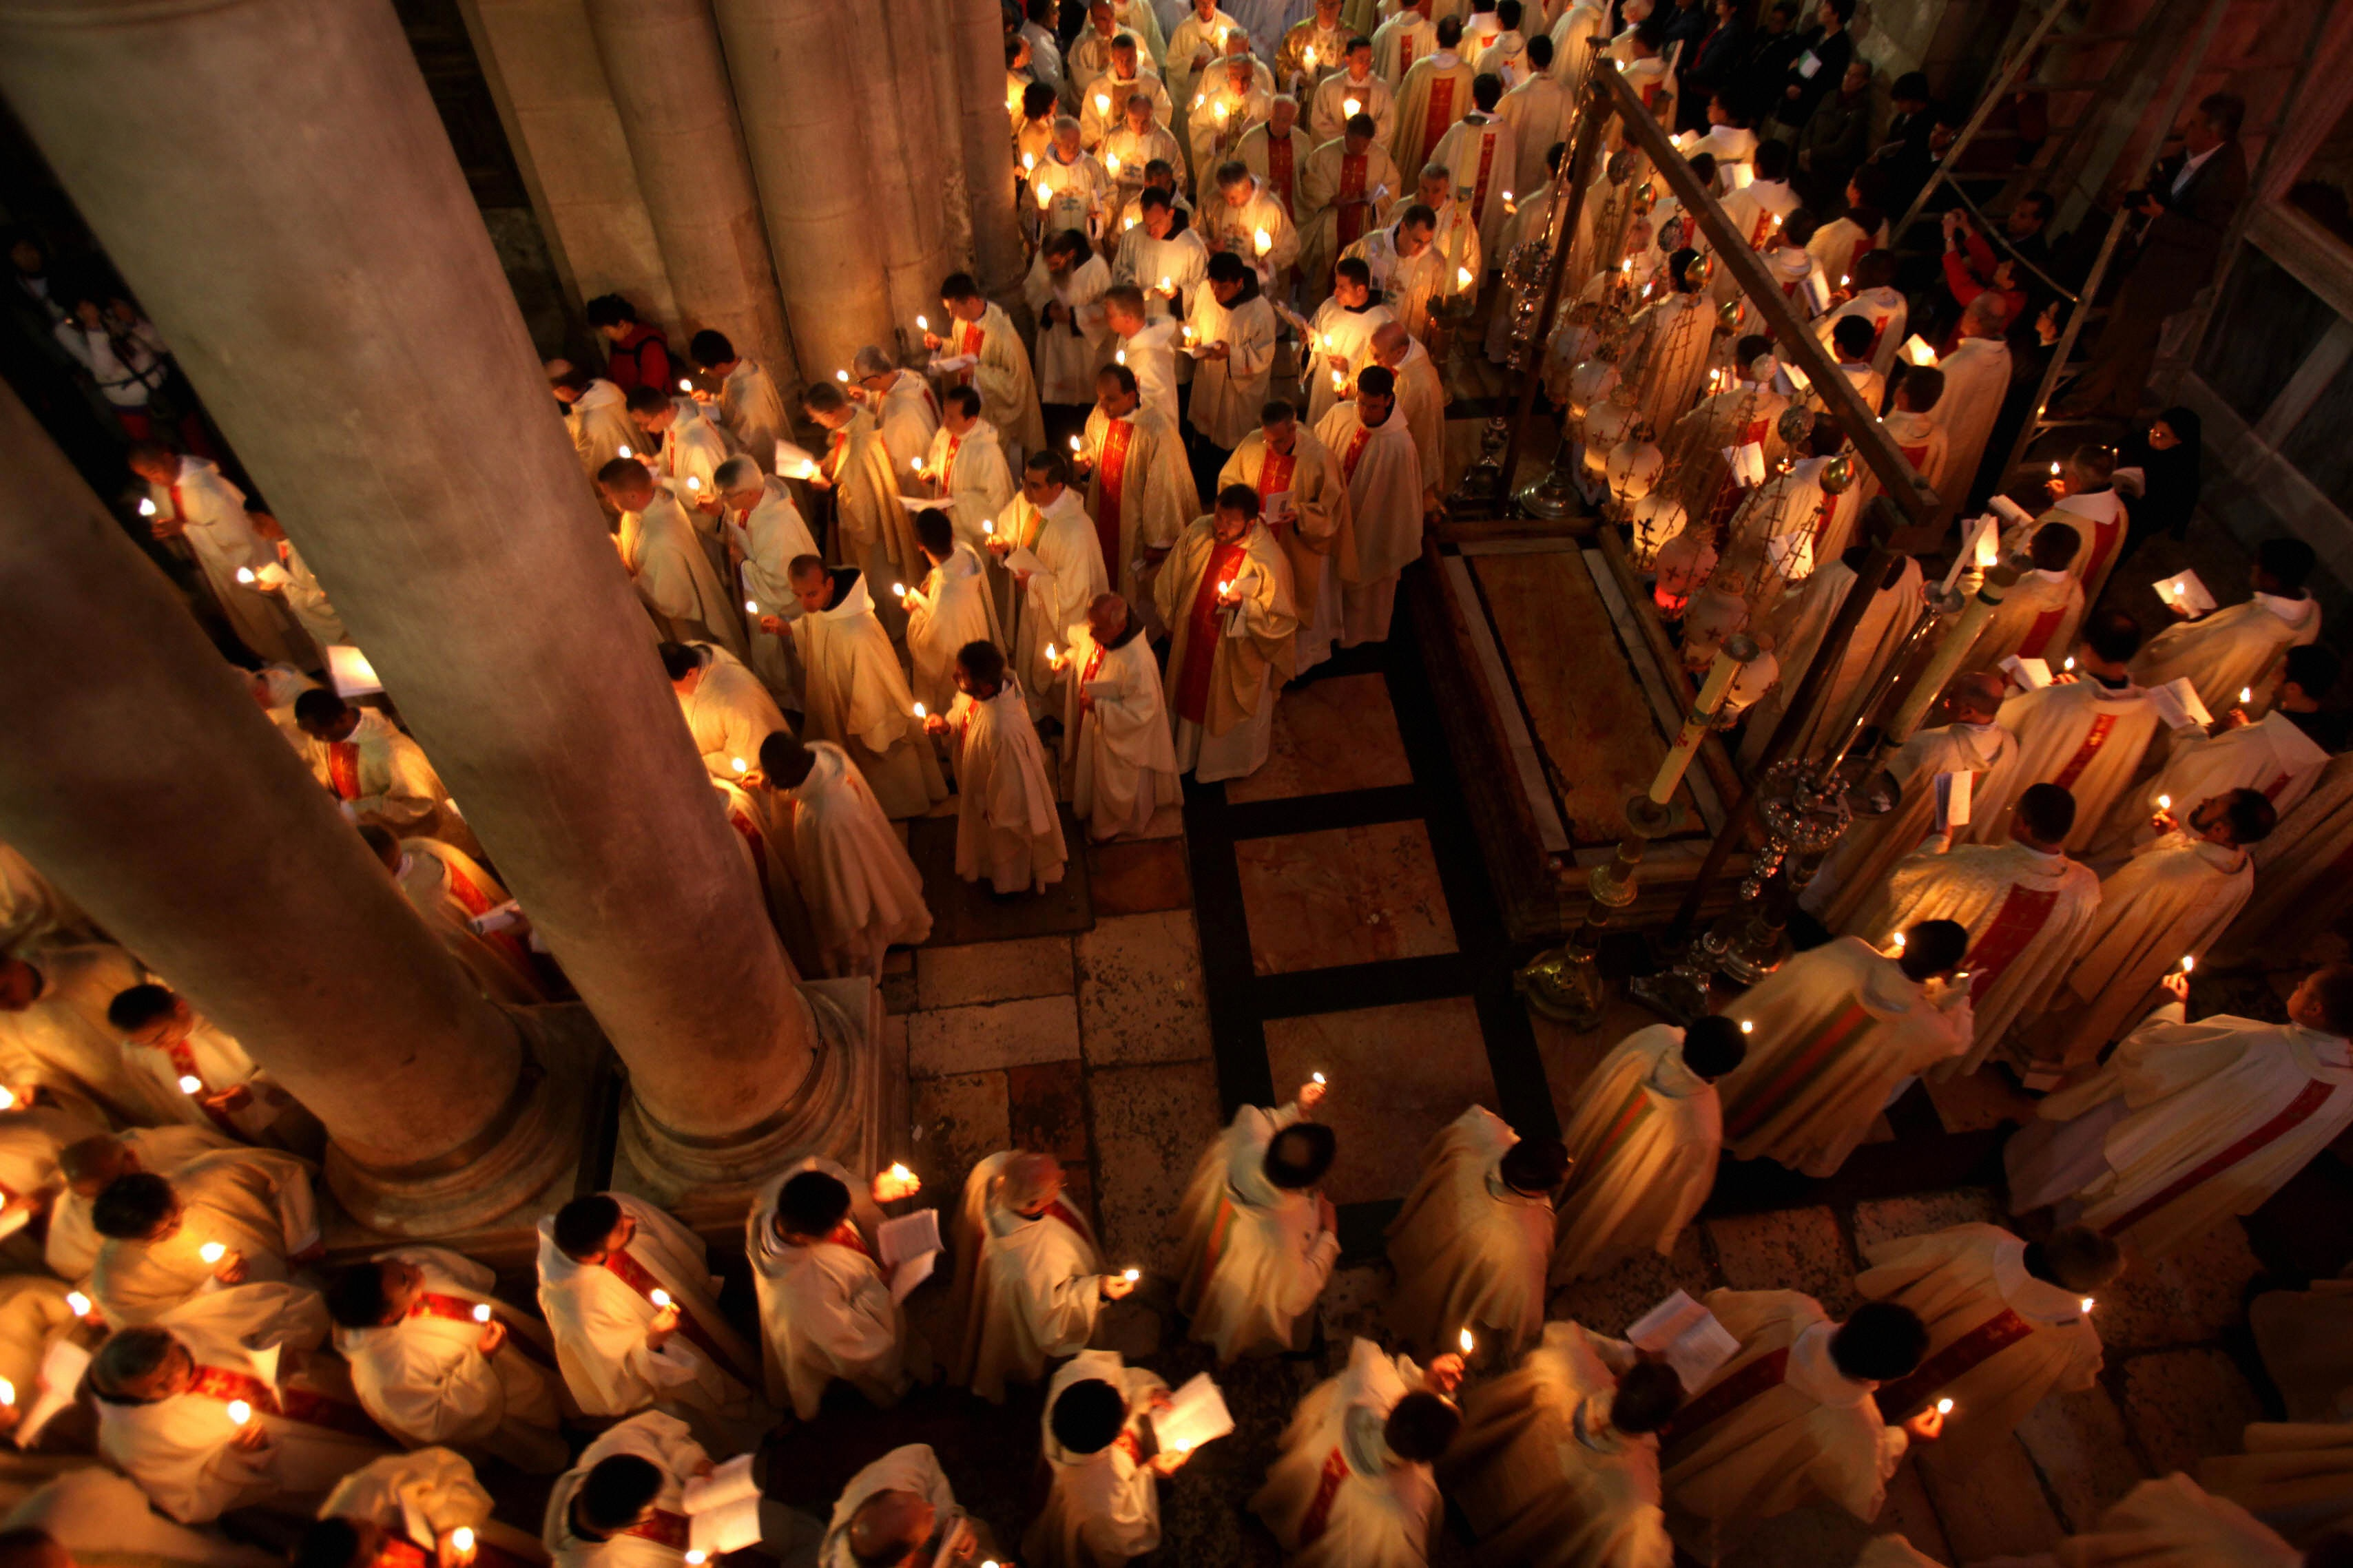 Roman Catholic clergy men hold candles as they circle the aedicule on Holy Thursday. Many Christians believe that  the Church of the Holy Sepulchre in Jerusalem is where Jesus was crucified and buried. Source:http://www.cnn.com